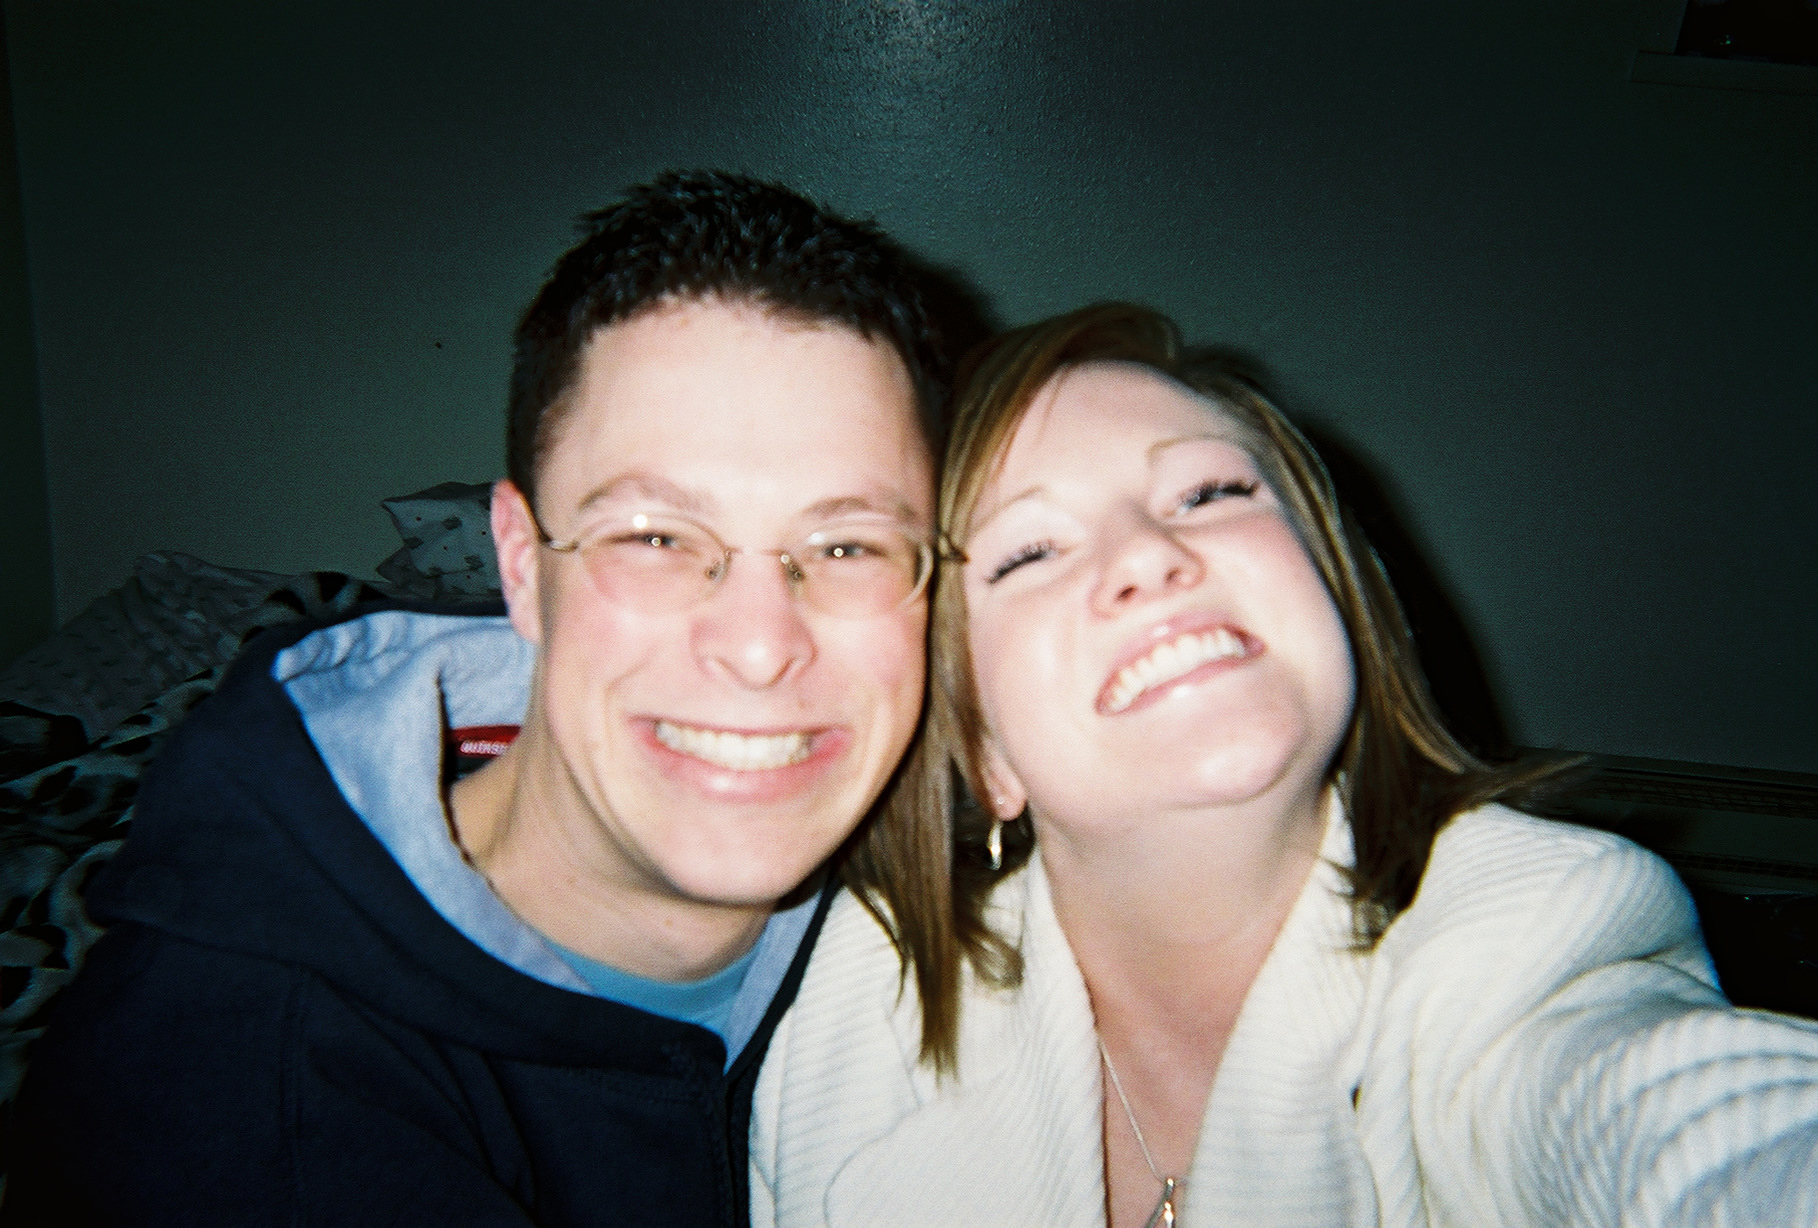 The early dating days. 2003.